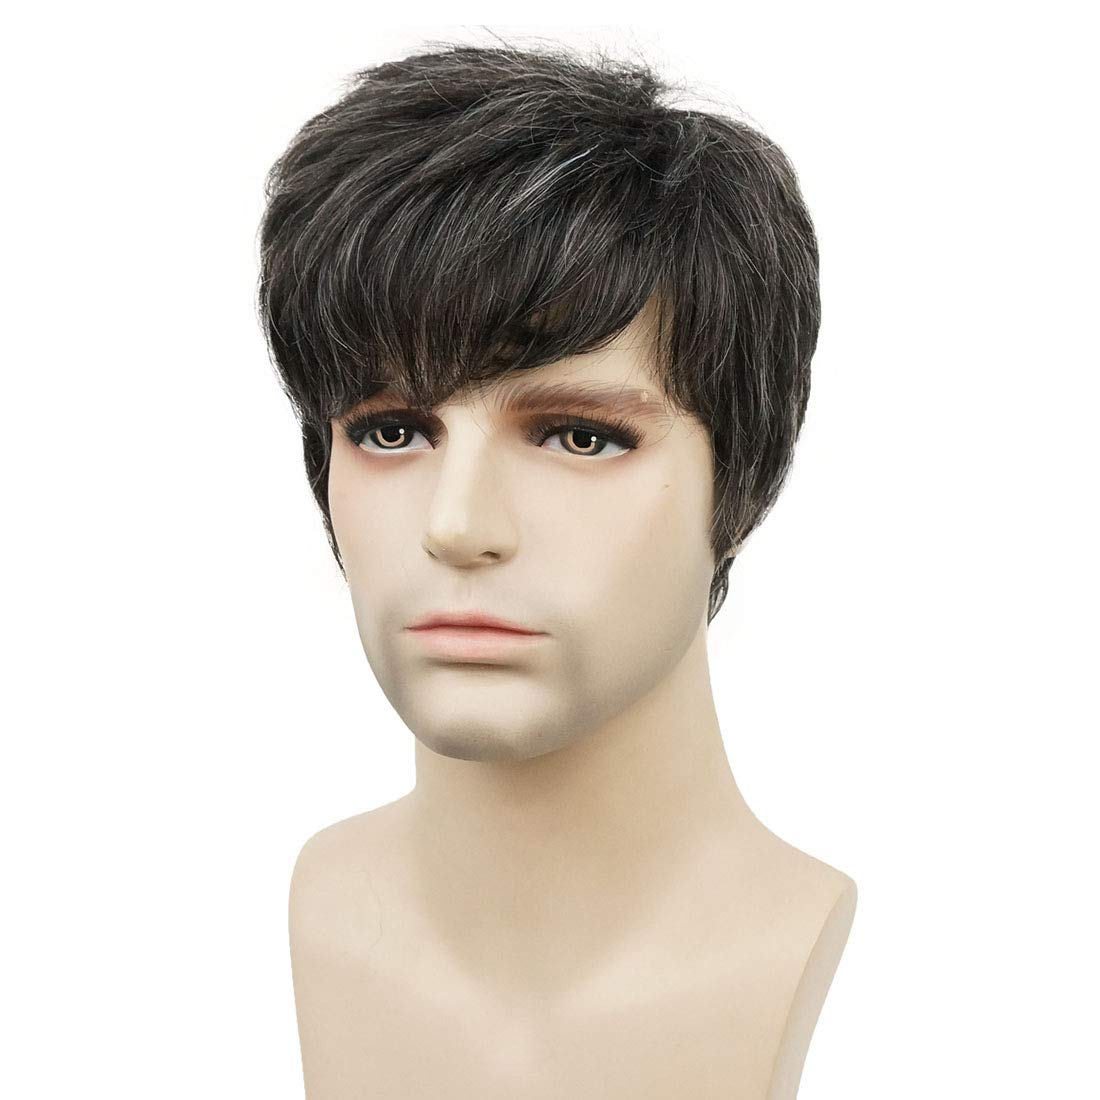 Amazon Com Wiginway Men Wig Short Straight Natural Wigs Pixie Cut Hair Synthetic Wig Dark Brown Mixed Gray Beauty